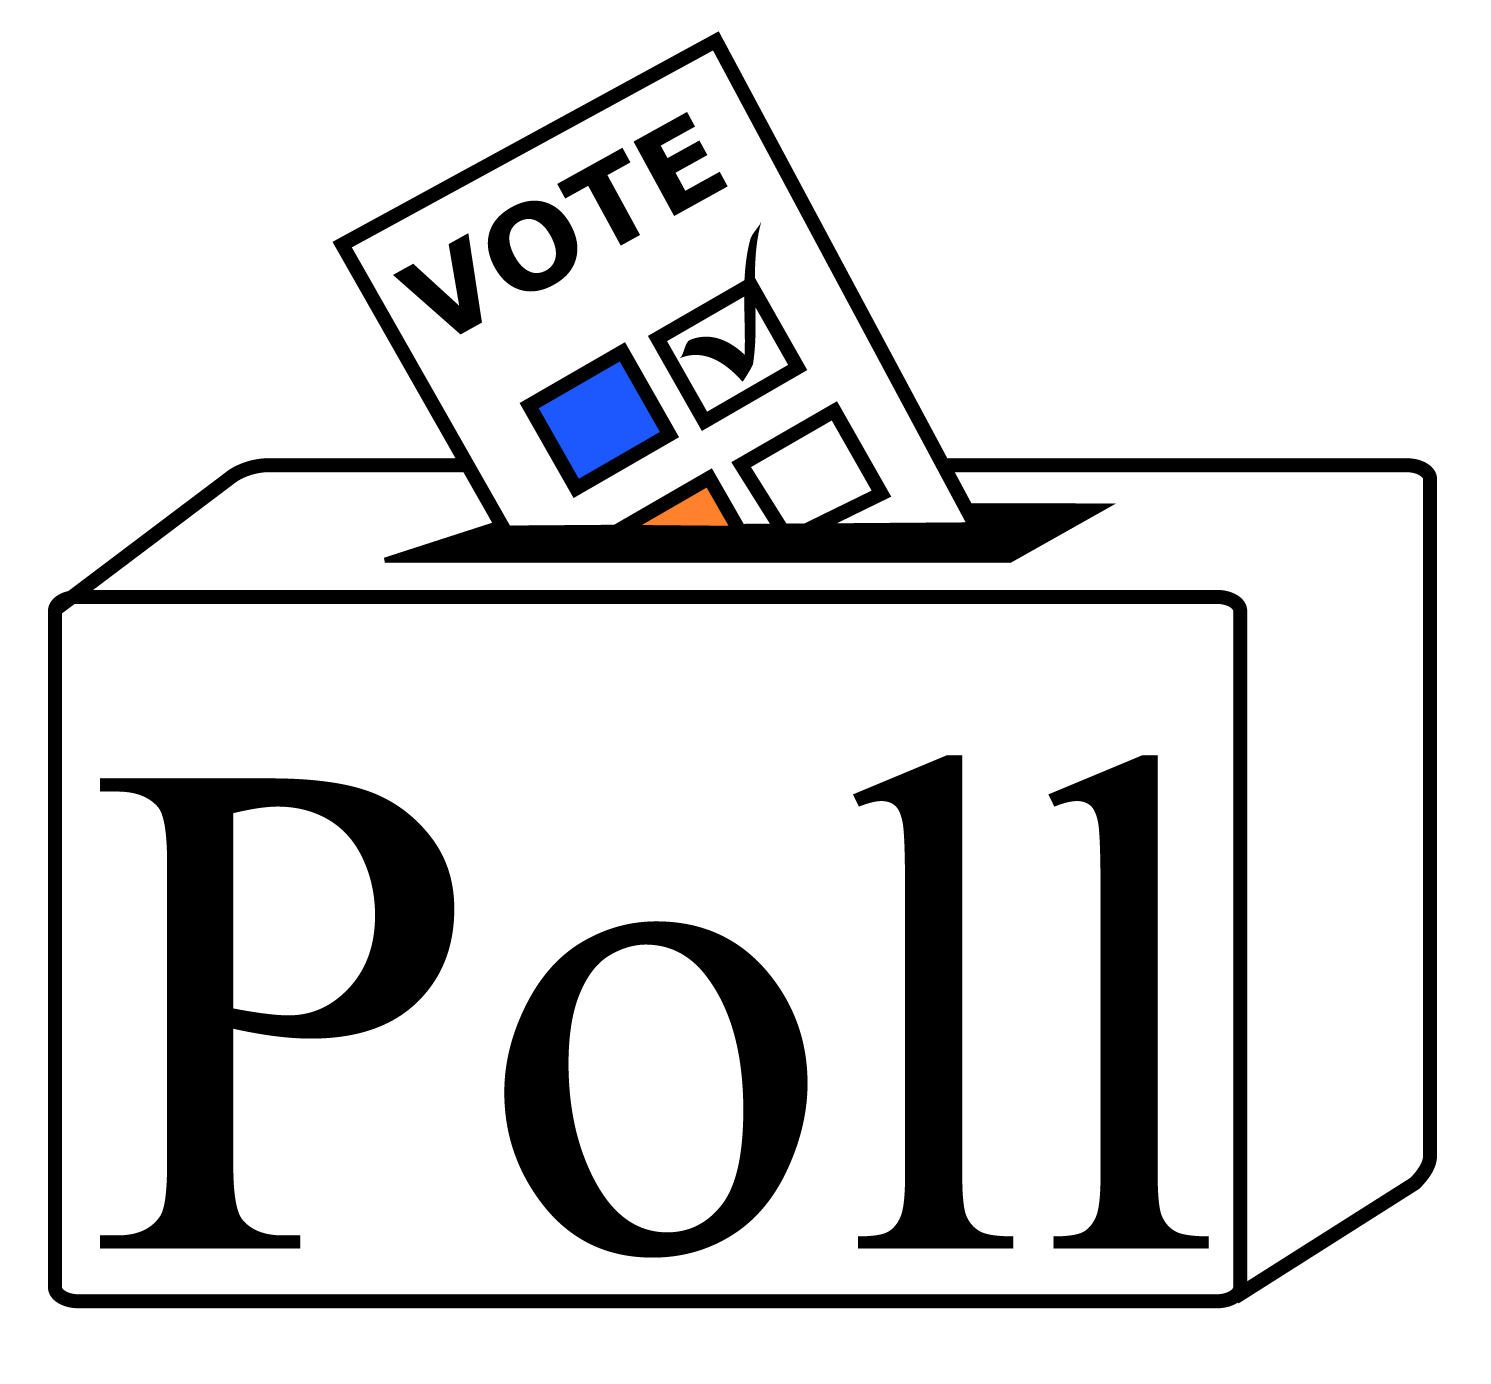 Democrats lead in three. Voting clipart voting poll